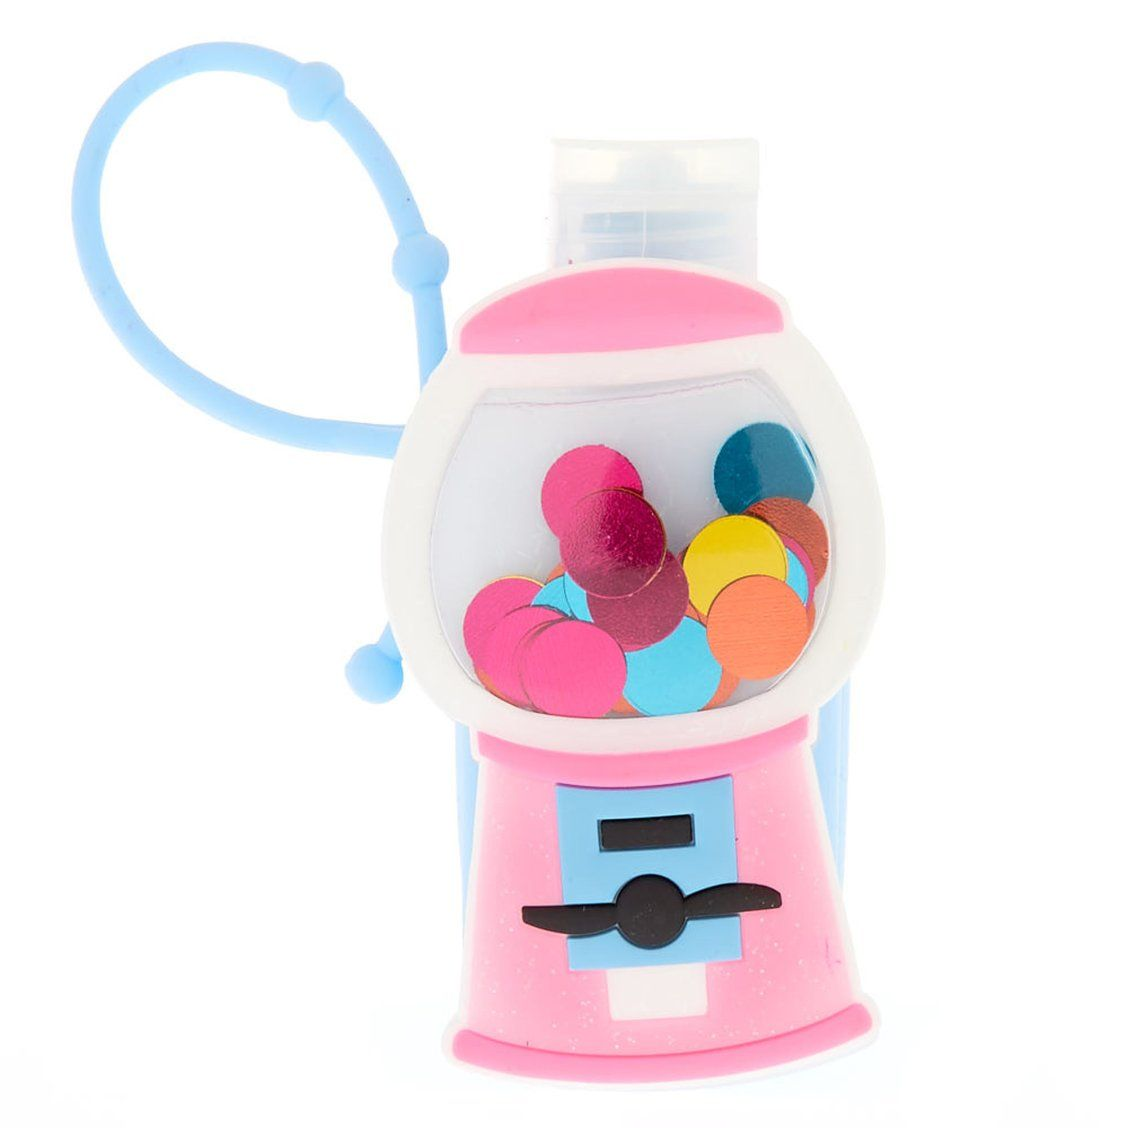 Gumball Machine Holder With Blueberry Scented Hand Lotion Give